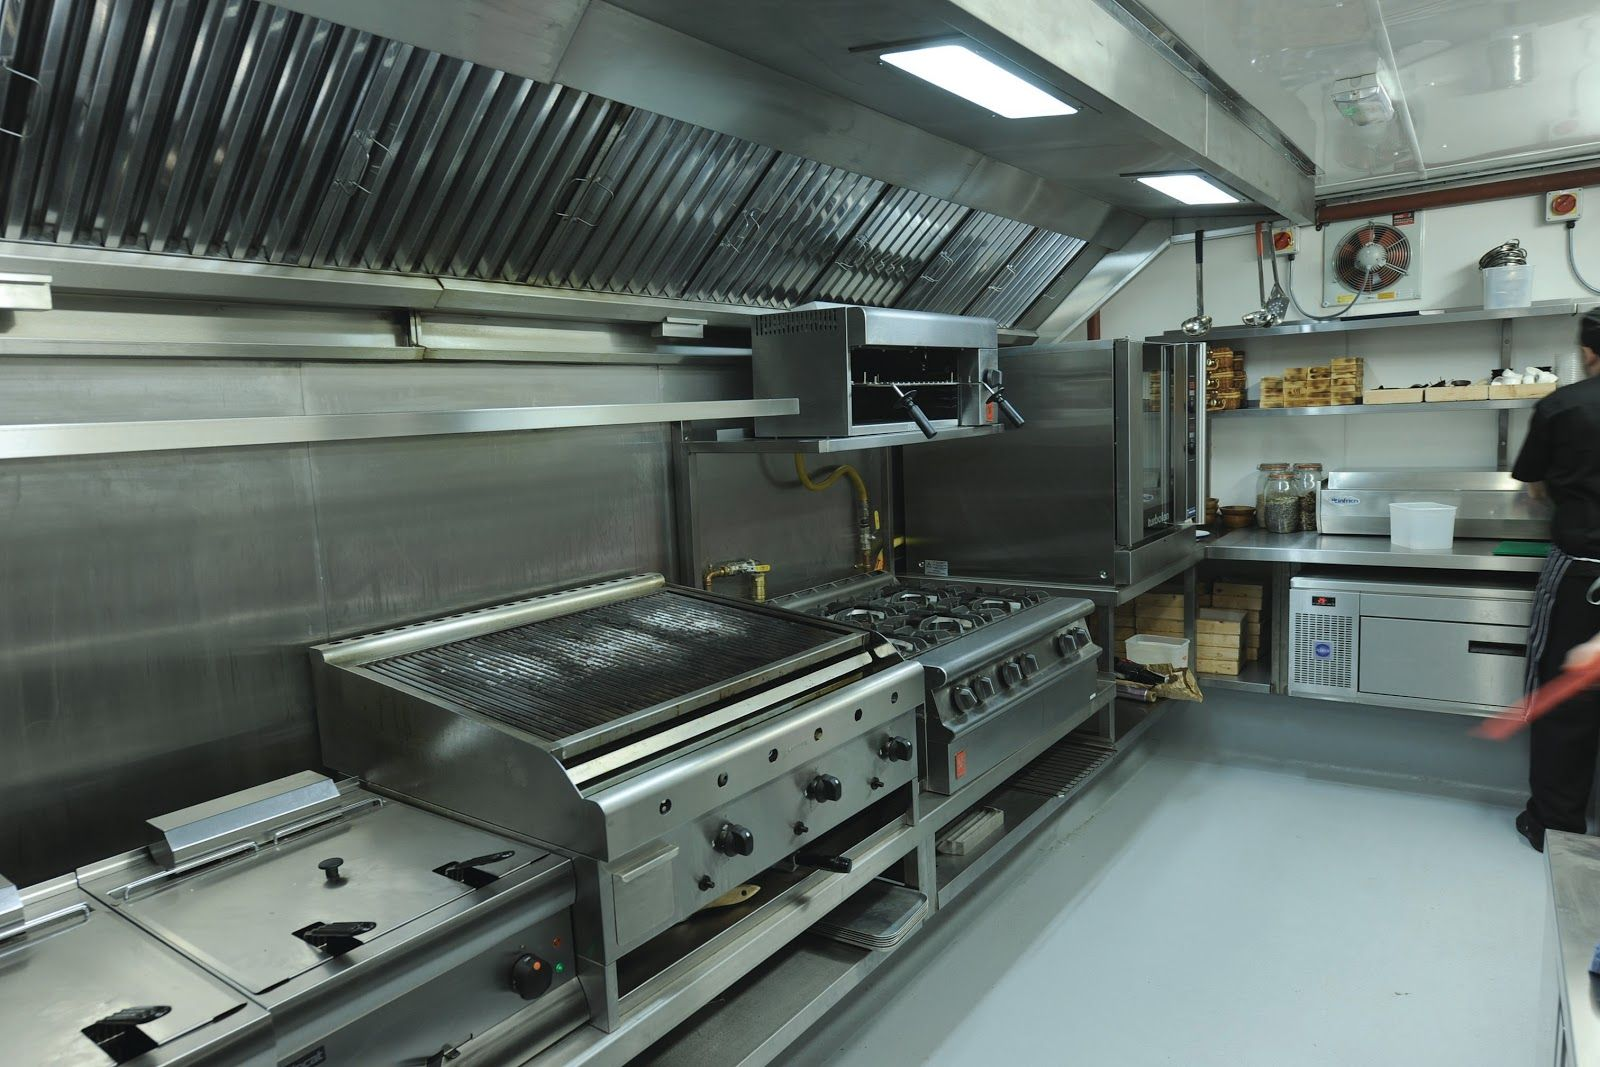 Pin by lisa pratta on chefs kitchens cocina industrial for Material de cocina industrial